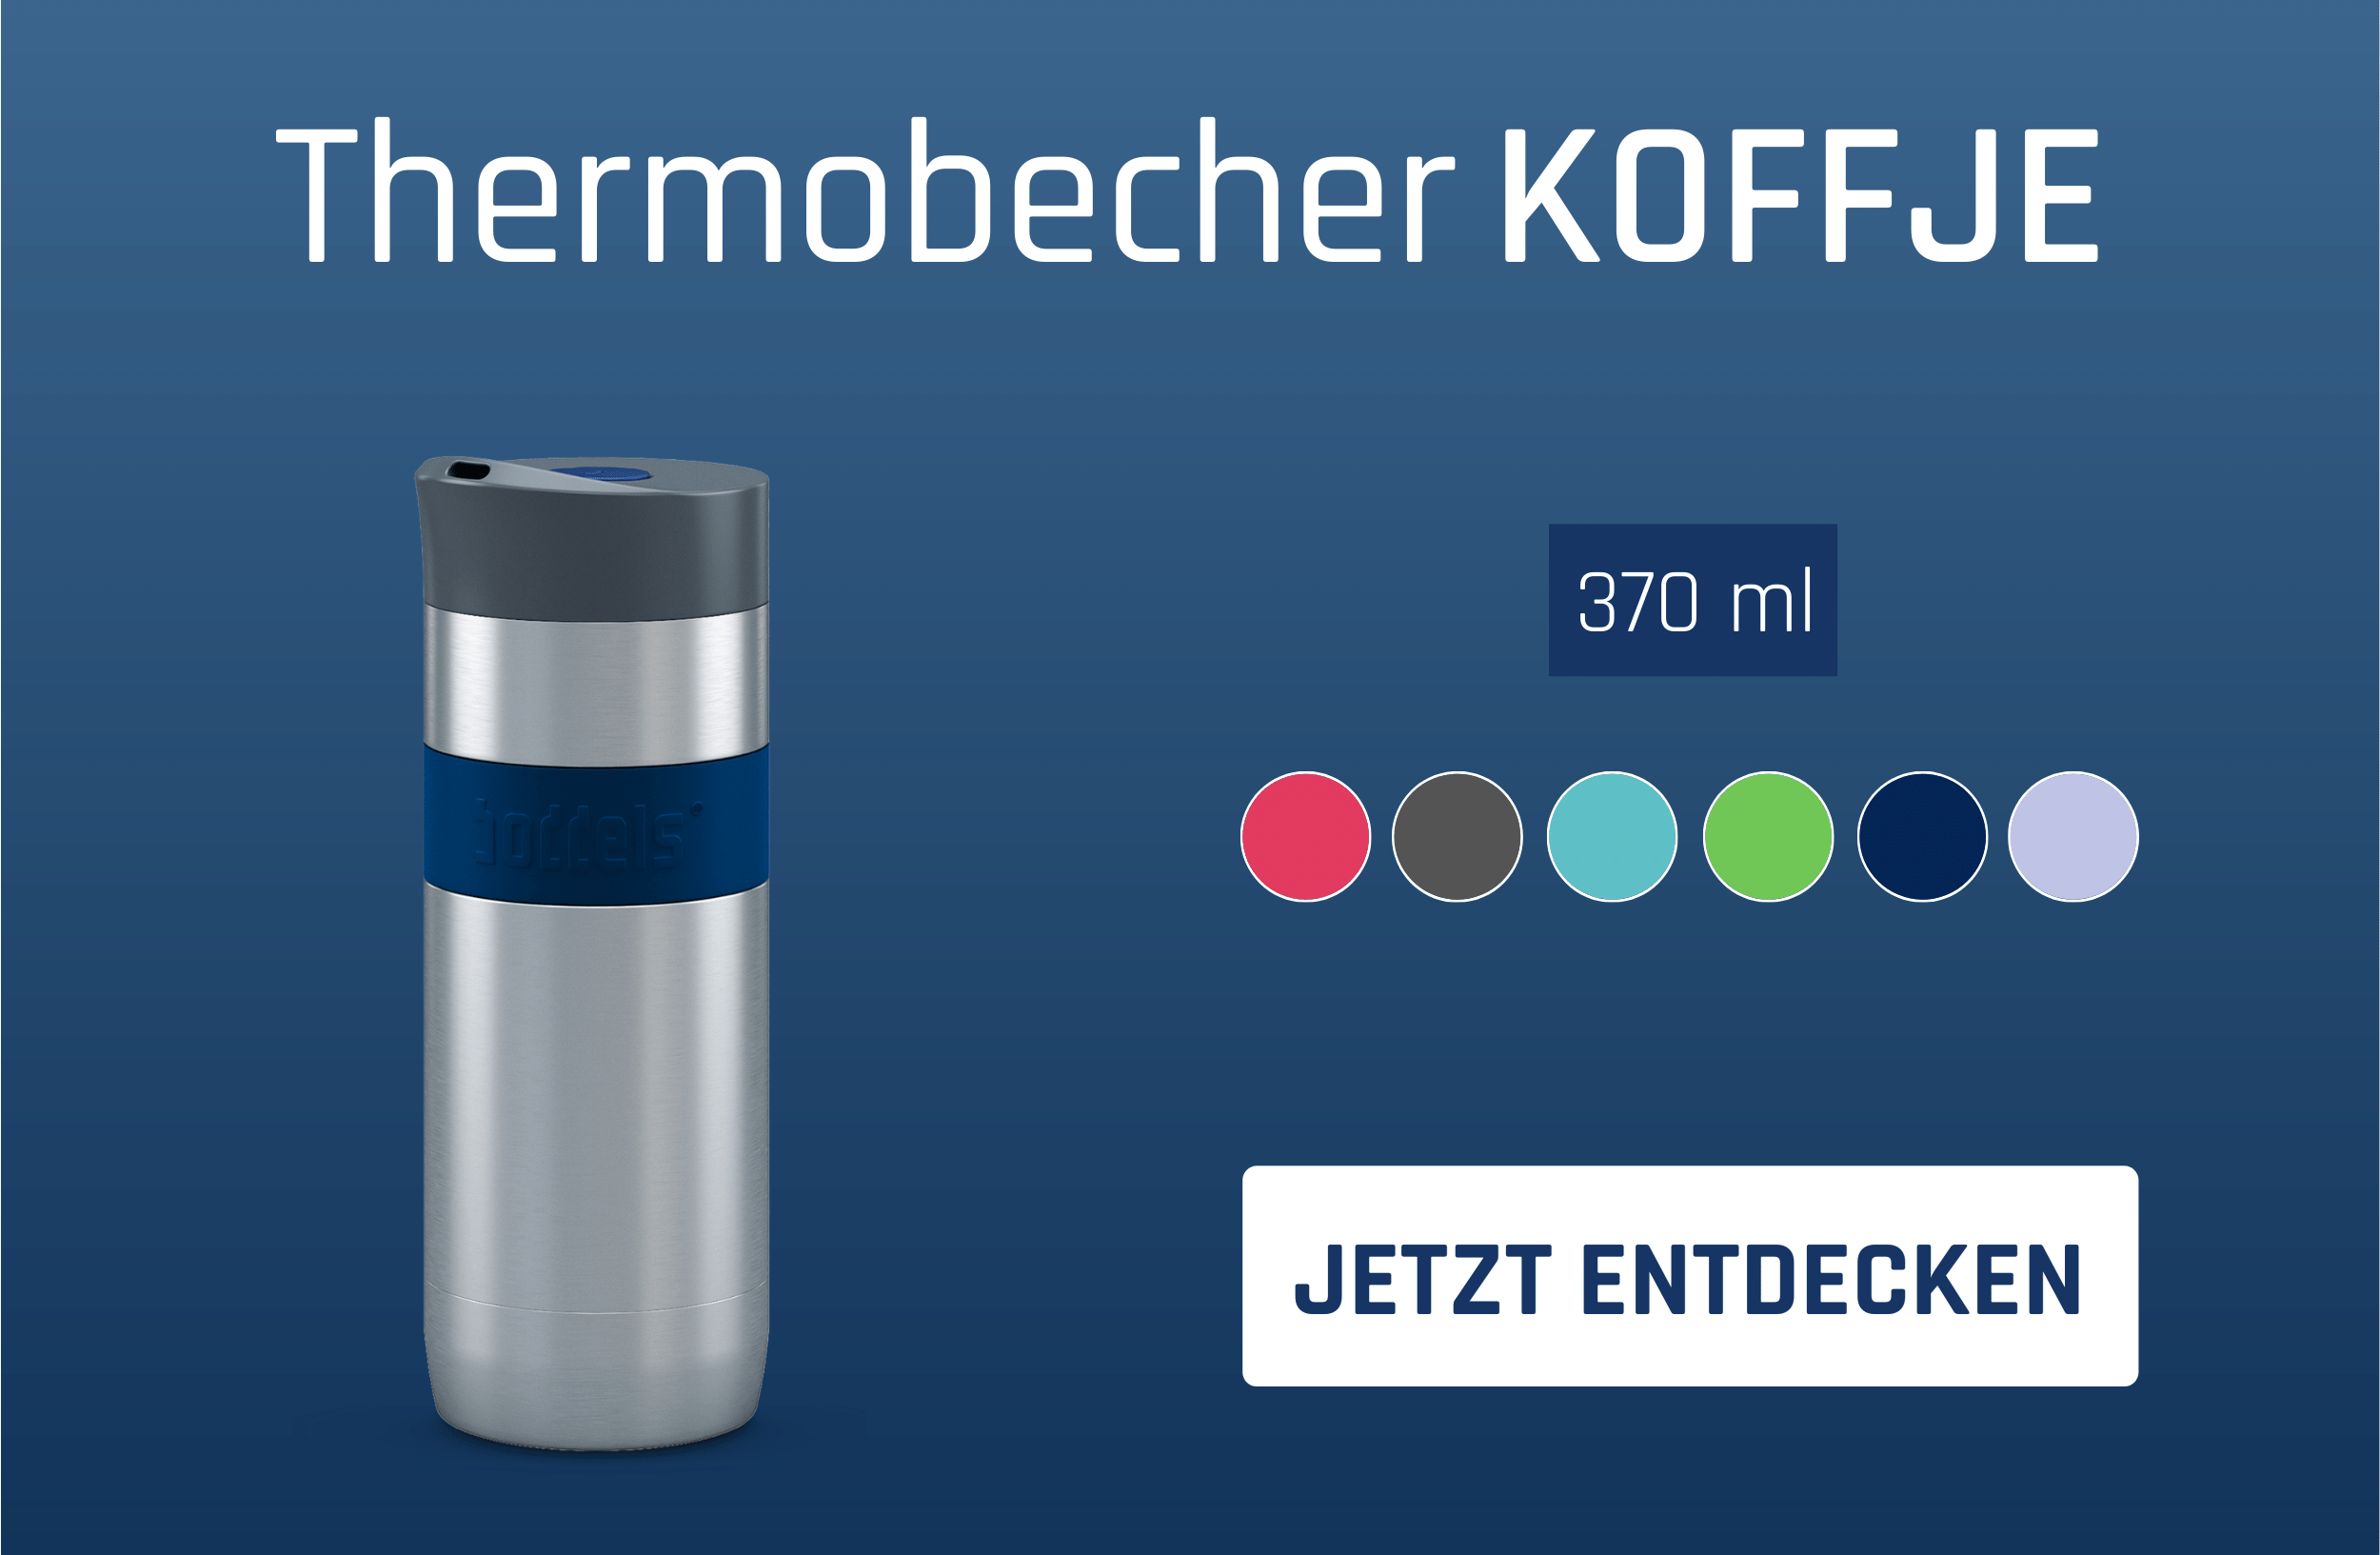 Thermobecher KOFFJE